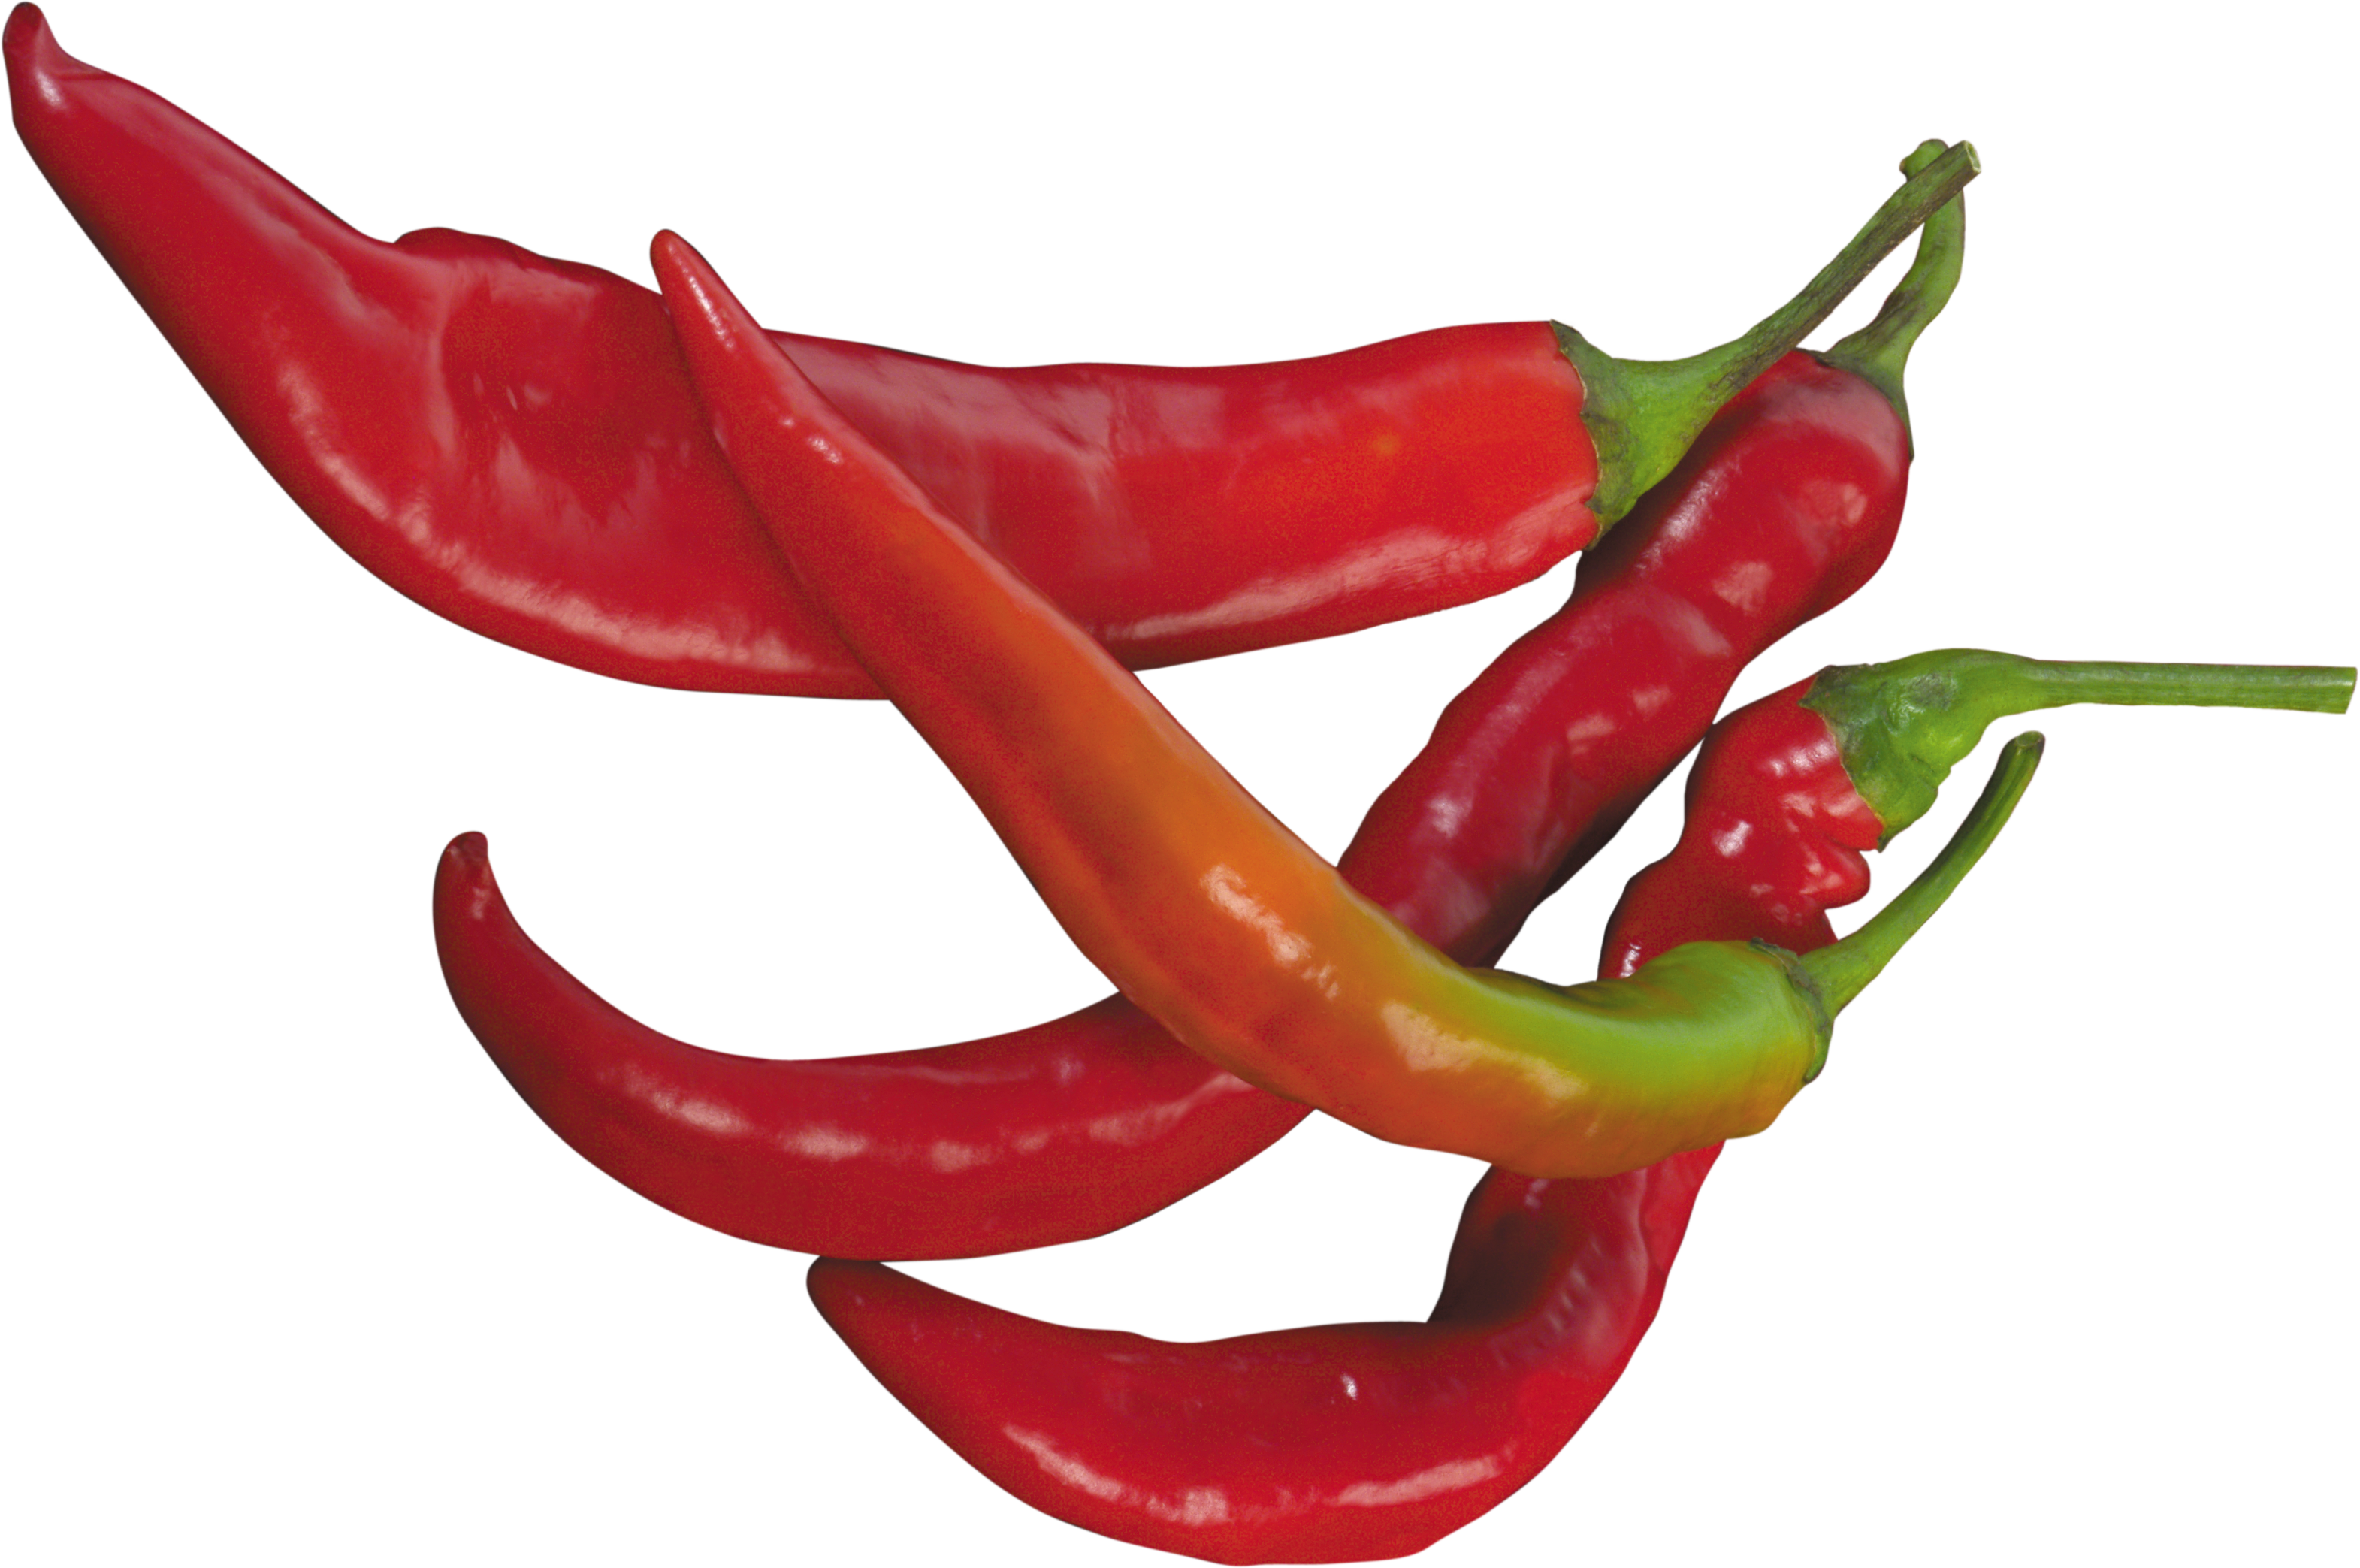 Red chili pepper PNG image